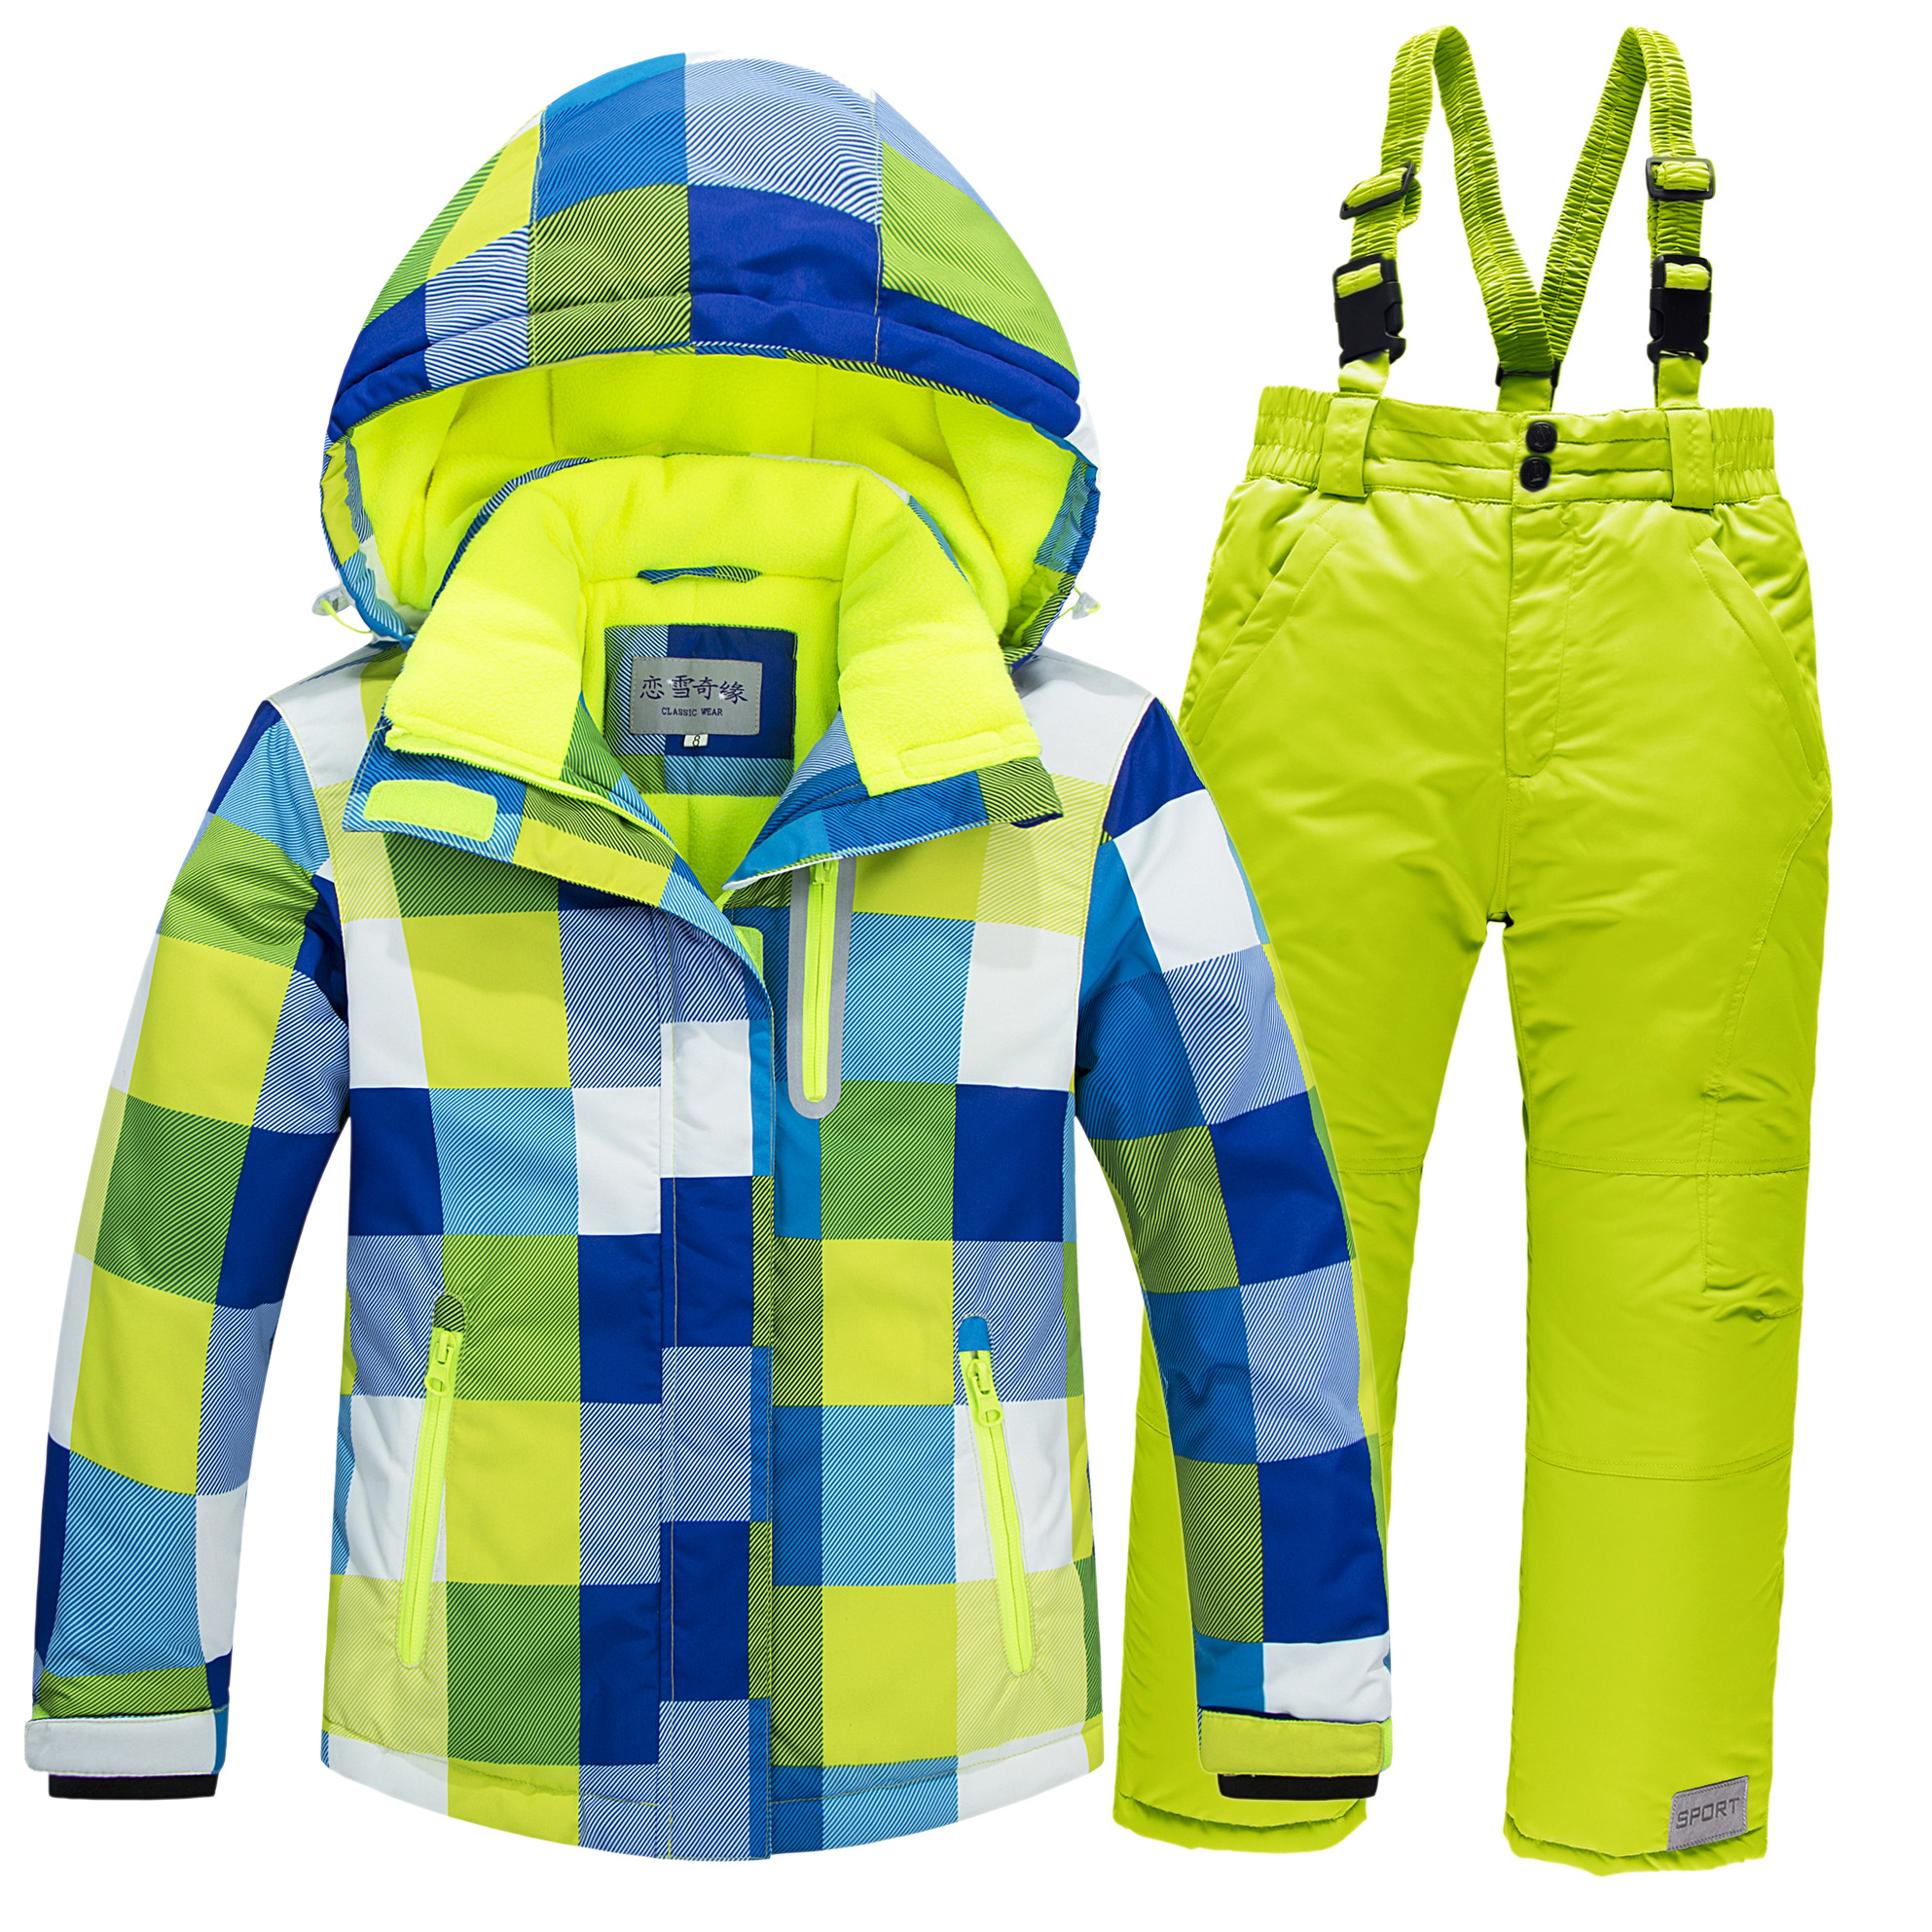 Winter Children Ski Suit Windproof Warm Girls Clothing Set Jacket + Overalls Boys Clothes Set Kids Snow Suits Family parenting kids ski suits snow suits for girls children boys snowsuit down cotton jacket winter overalls child winter thicken clothing